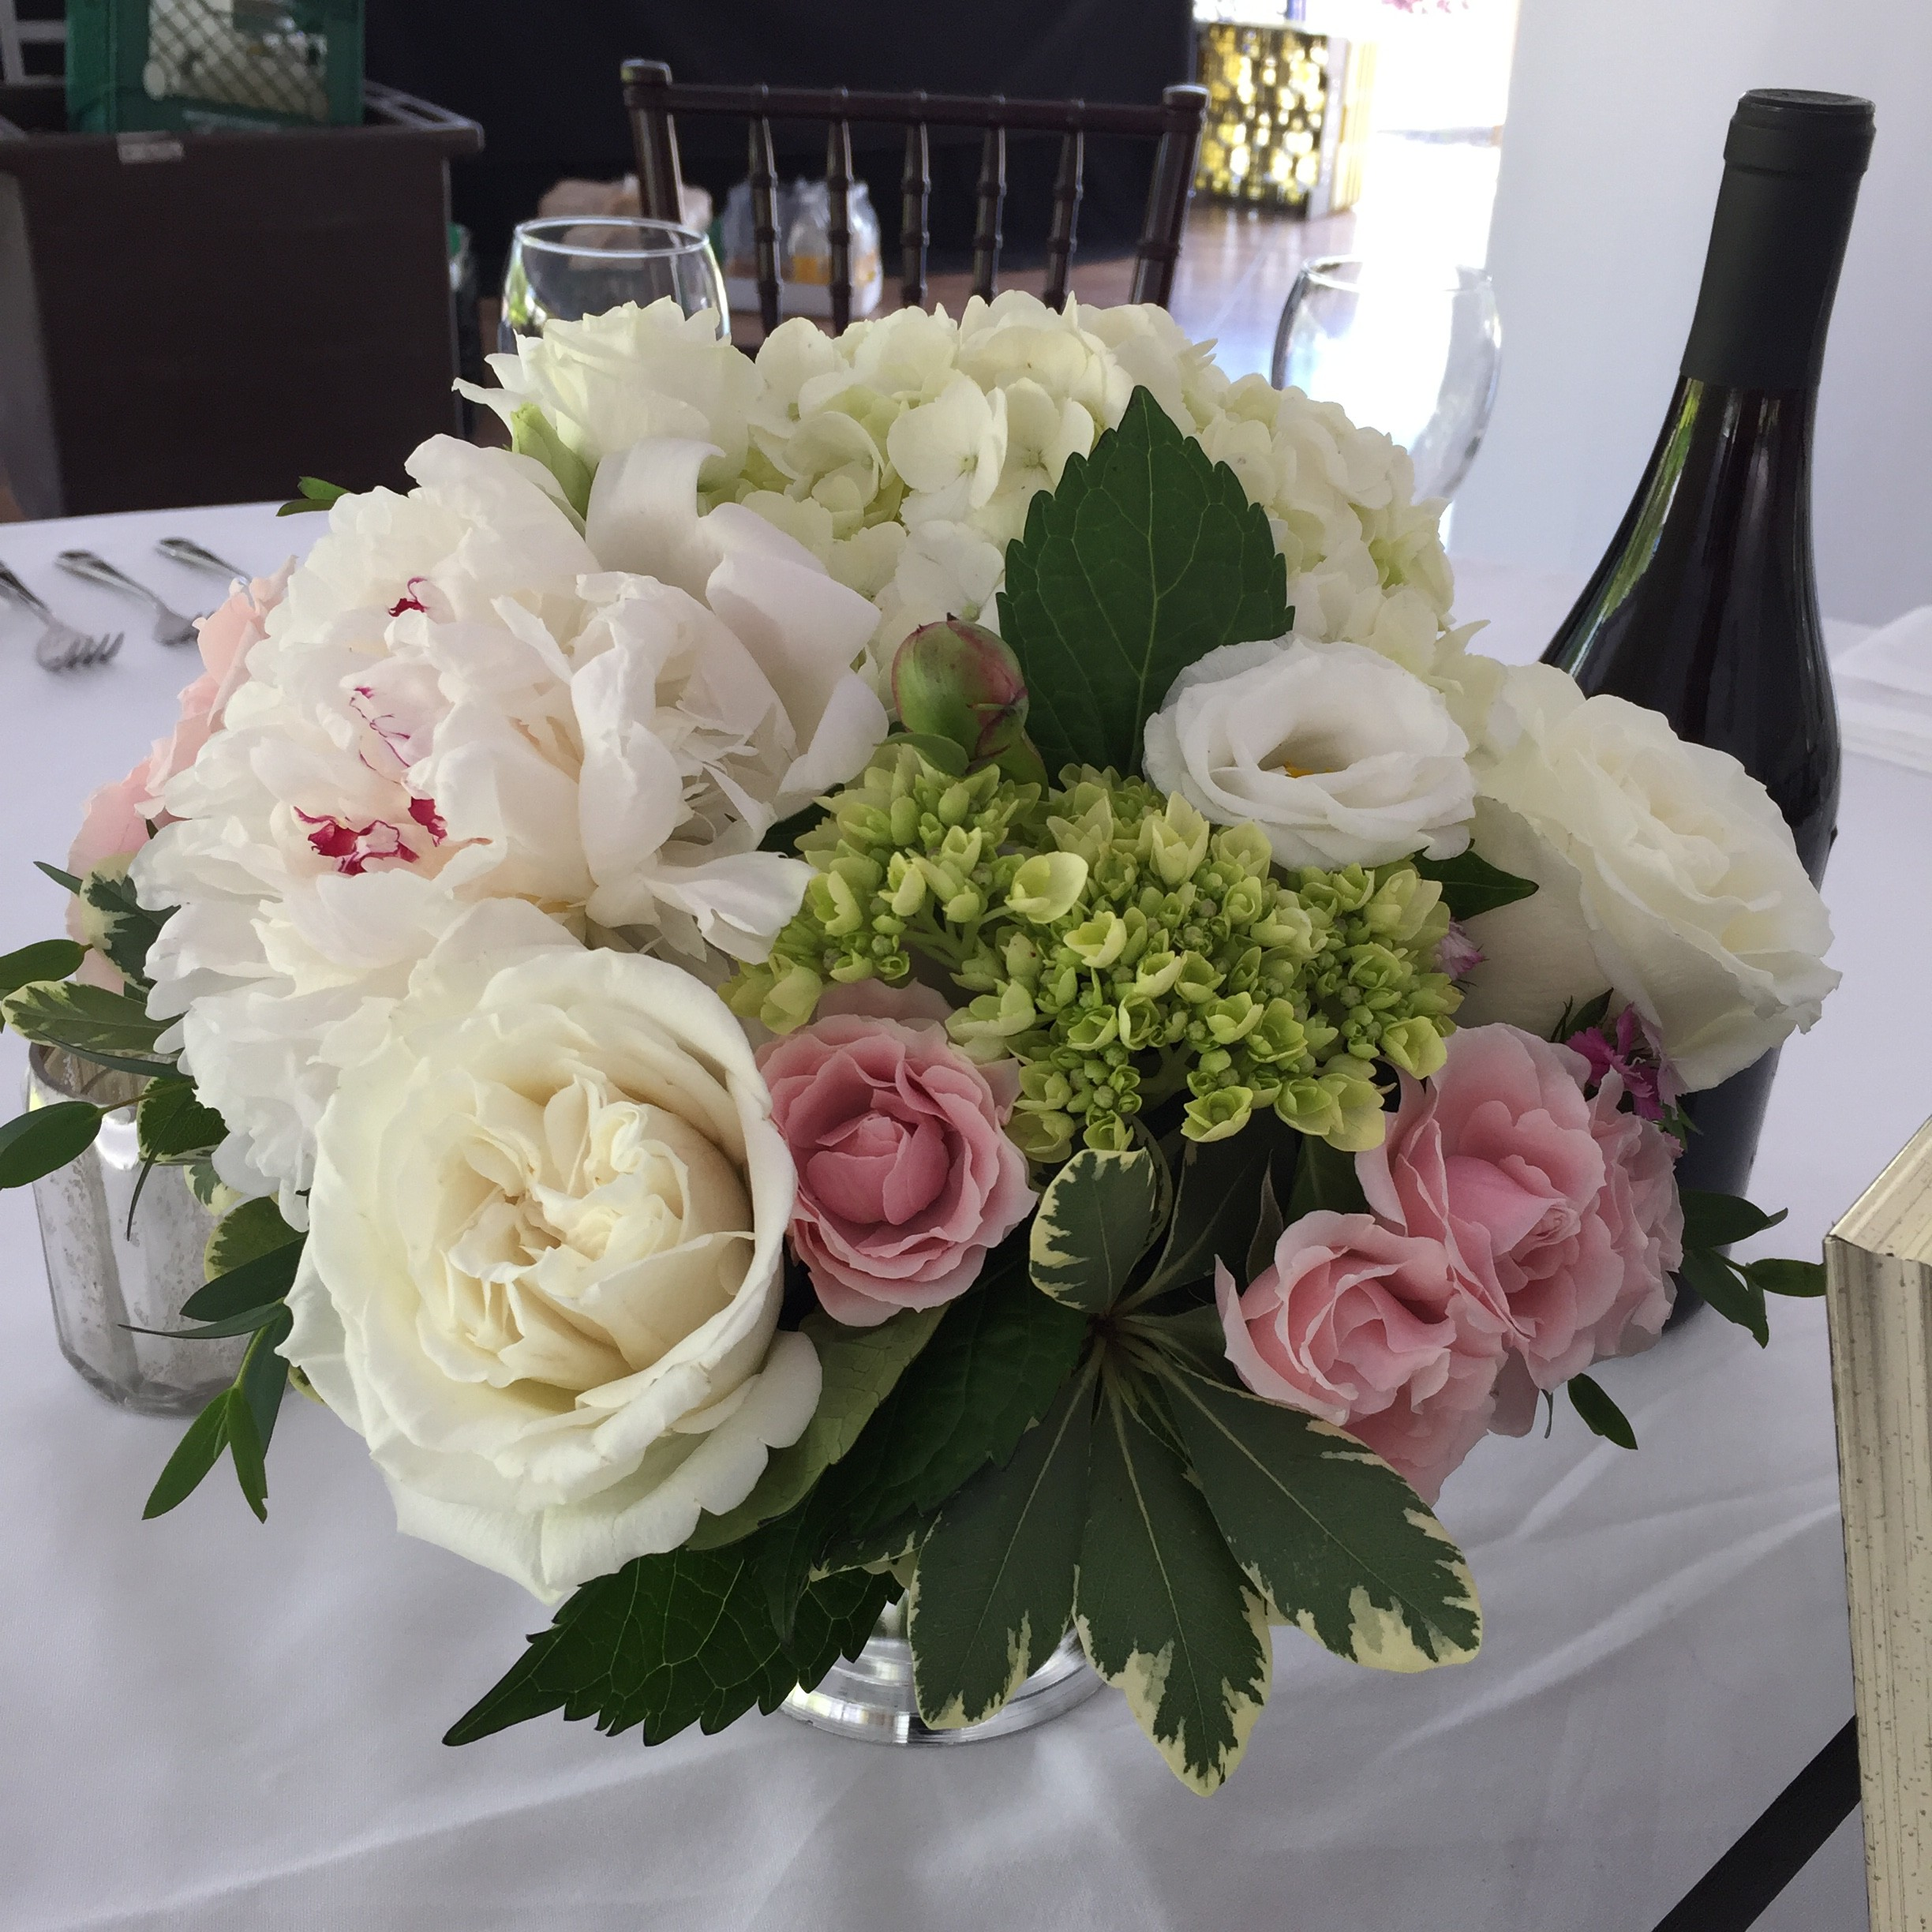 Floral Artistry, Vermont Wedding Flowers, Peony centerpiece, Topnotch Resort, Wedding in Stowe